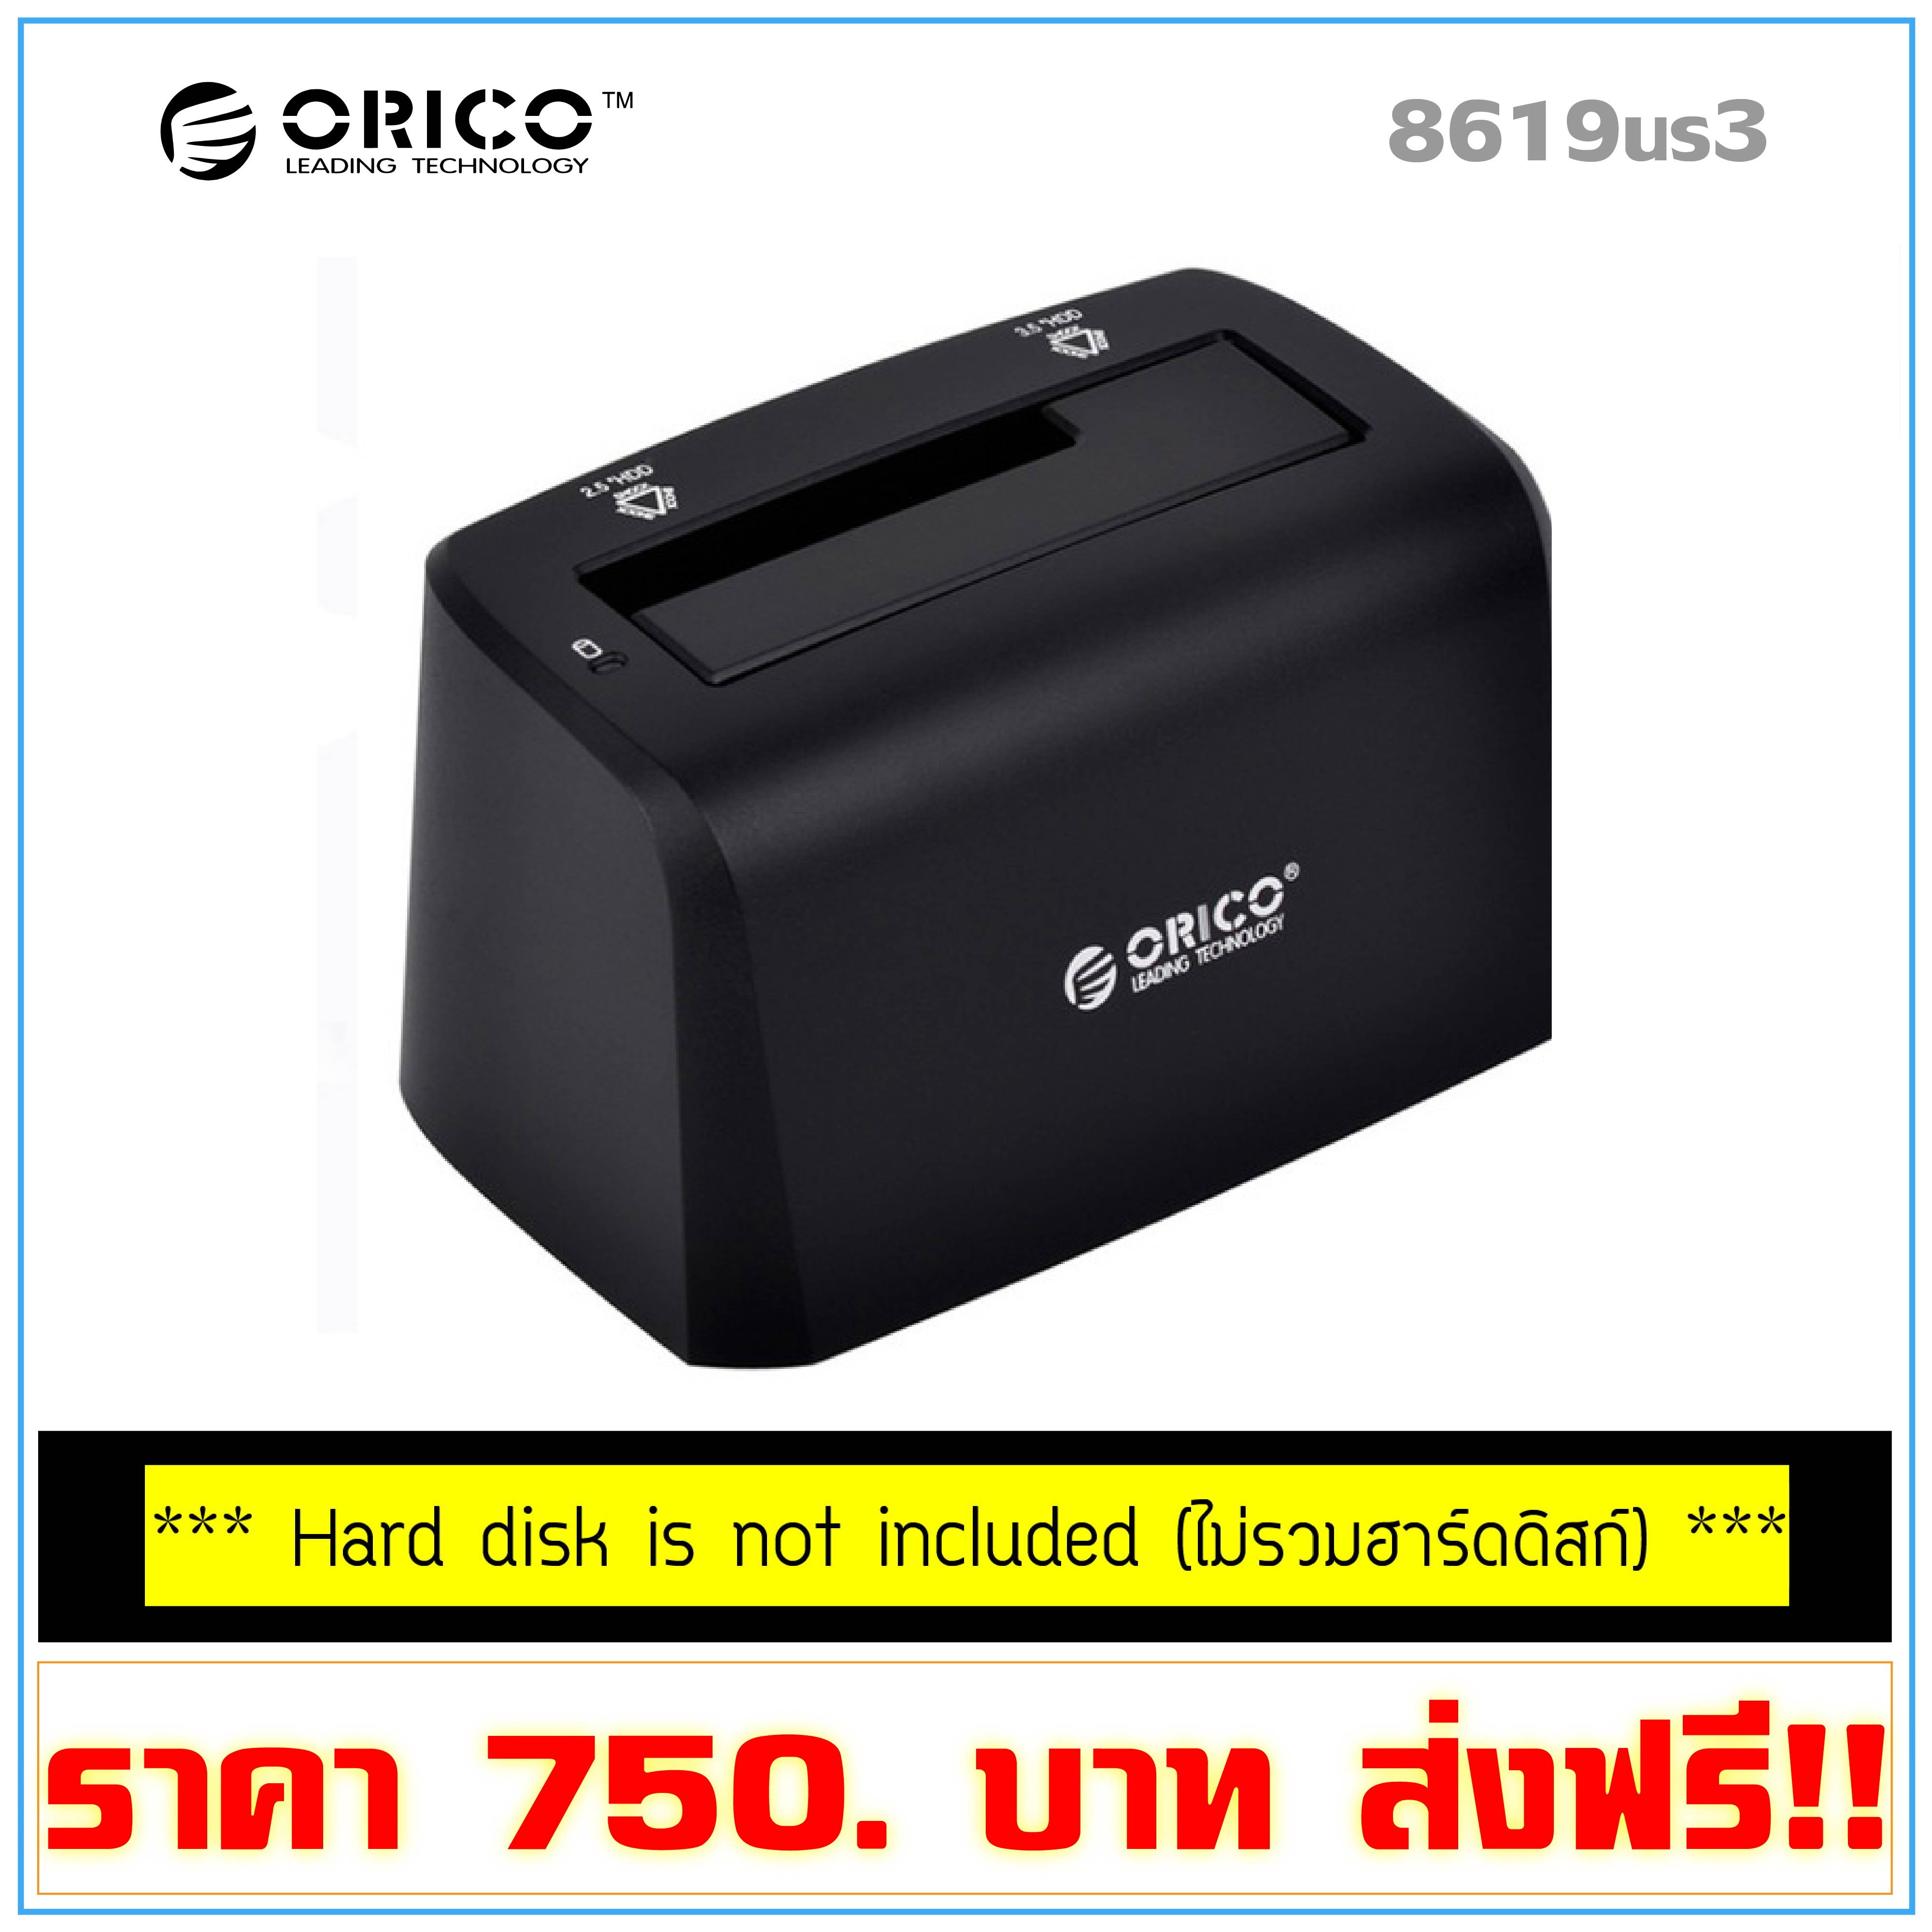 ORICO 8619 Series 2.5 inch and 3.5 inch SATA Hard Drive Docking Station